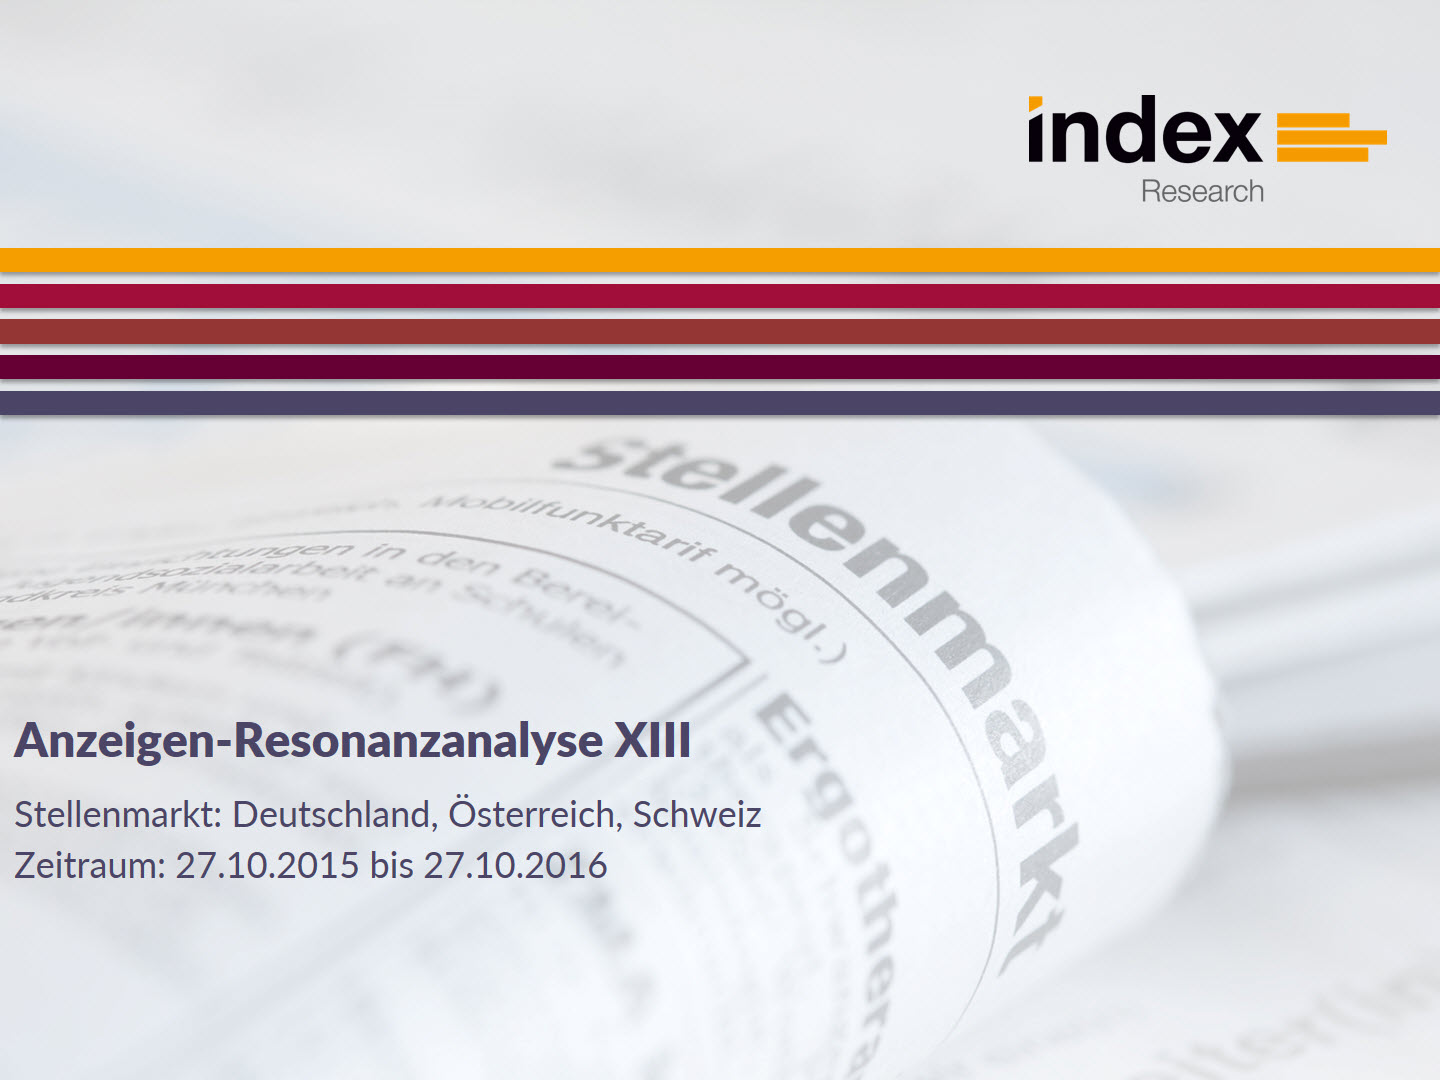 index-Anzeigen-Resonanzanalyse